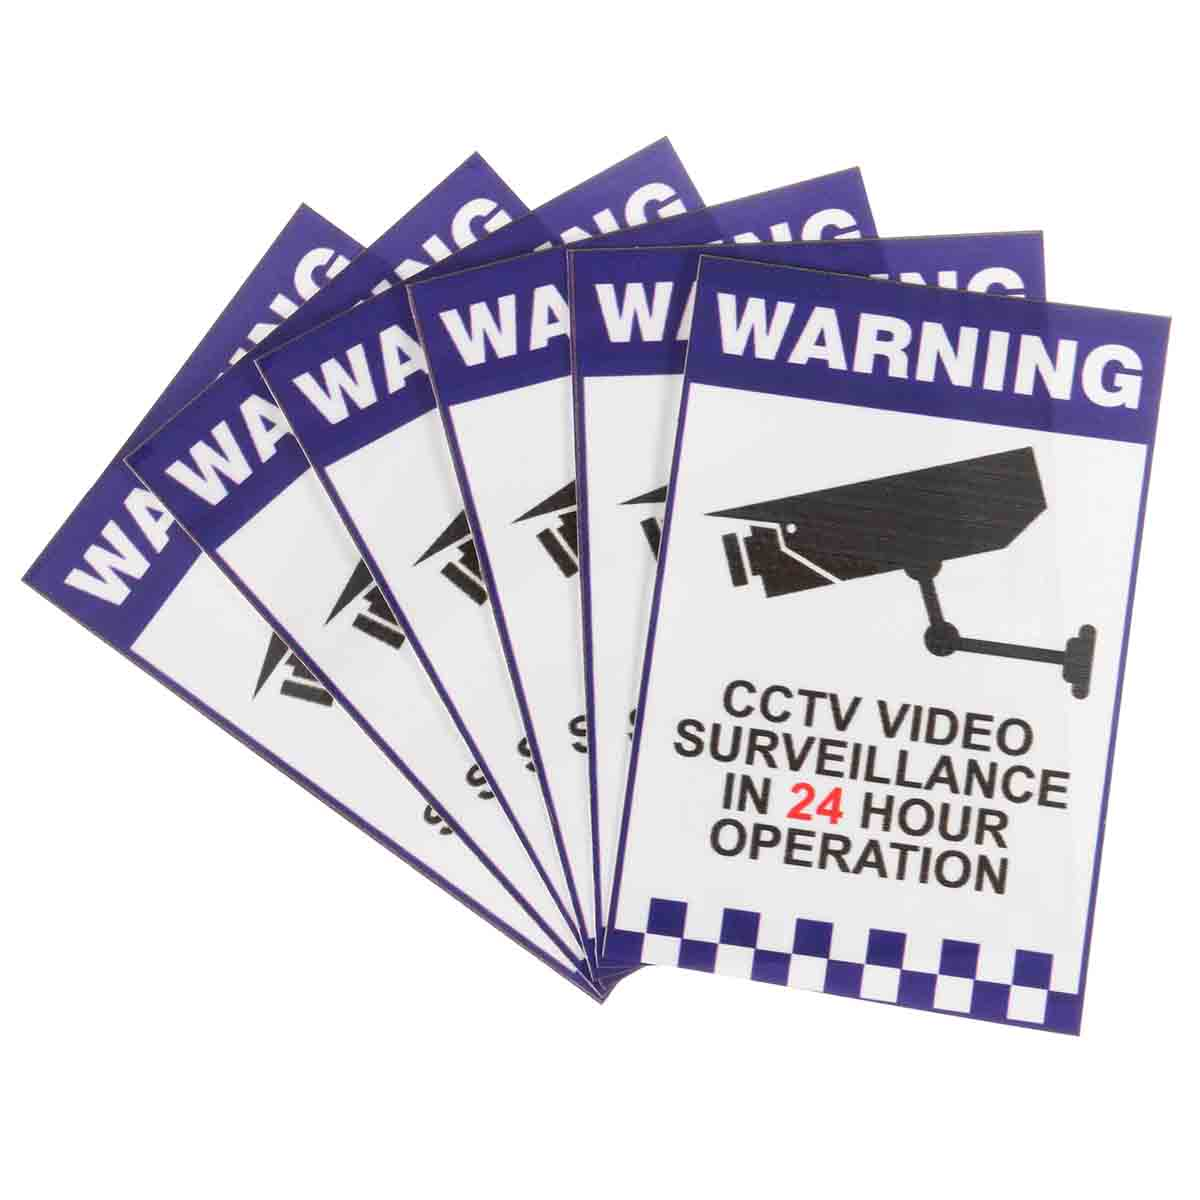 Safurance 6x Warning CCTV Security Surveillance Camera Sign Warning Decal Sticker 66x100mm Home Security Safety унитаз подвесной ifo sjoss rimfree с сиденьем микролифт rp313200600